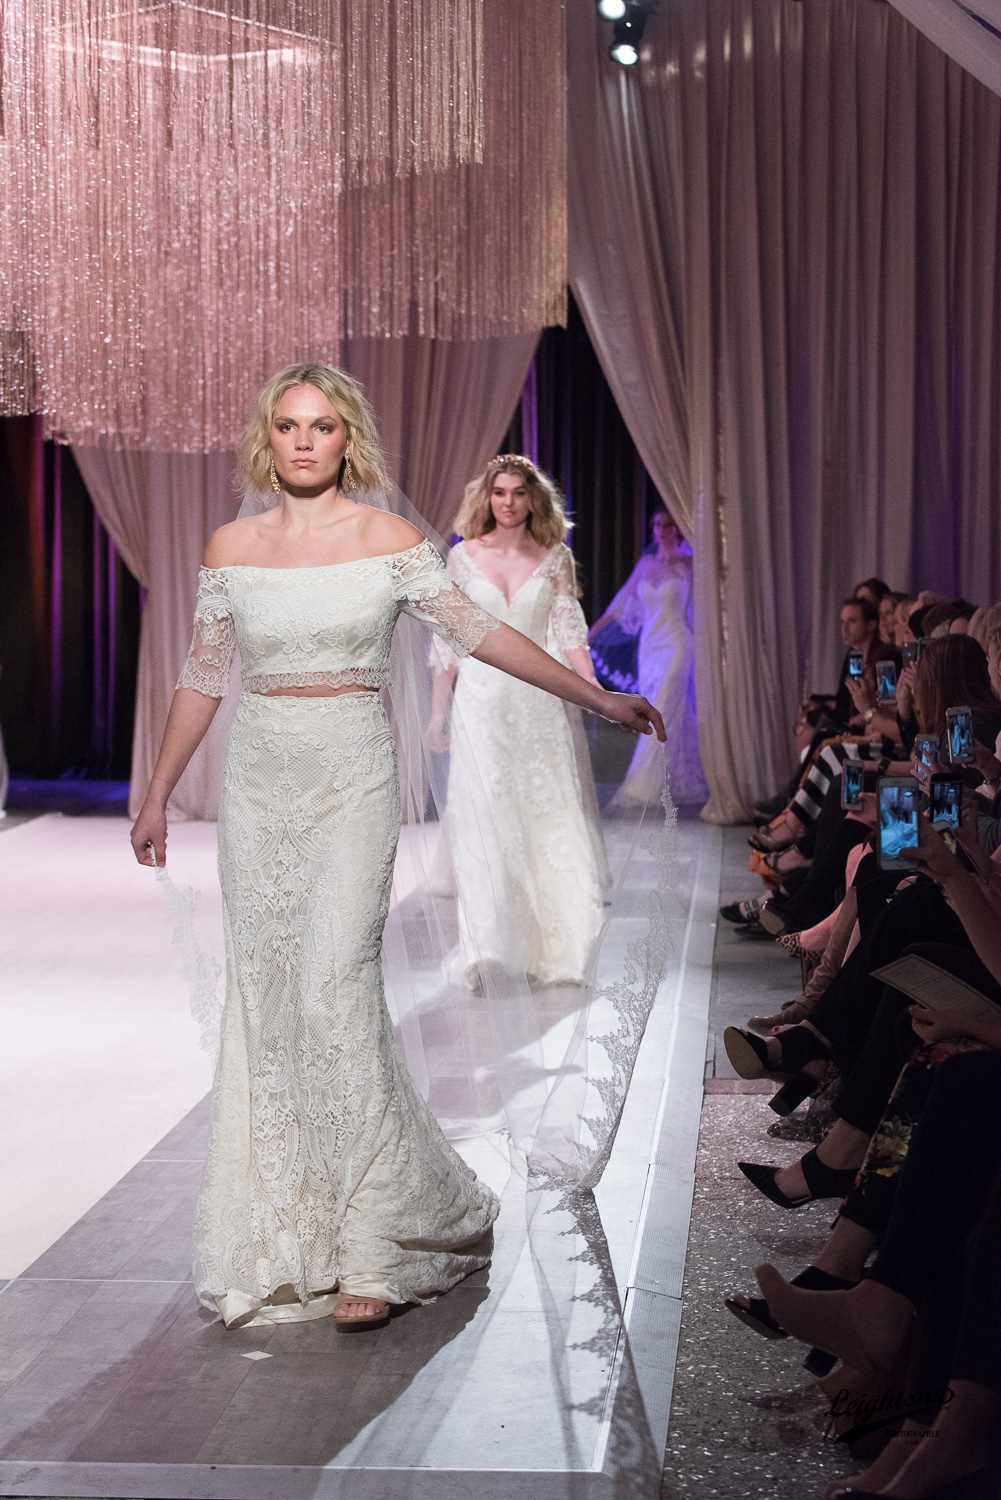 Animoto-ModernTrousseau-CHS Wedding Week 2018-LeightonD-9947.jpg